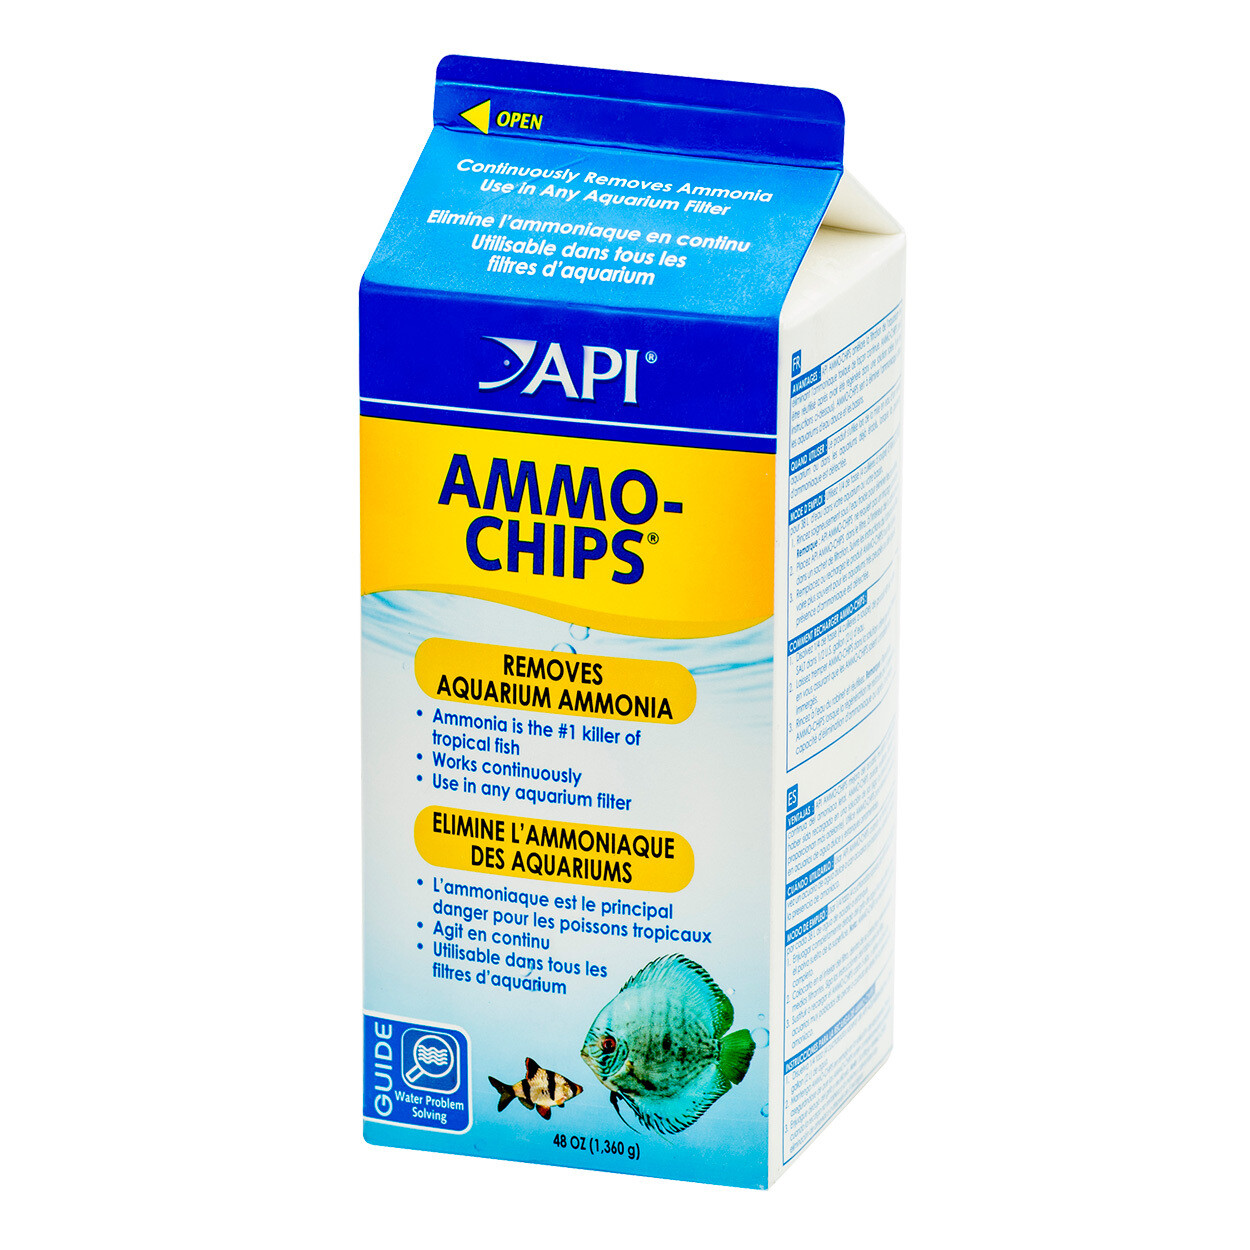 API Ammo-Chips 48oz